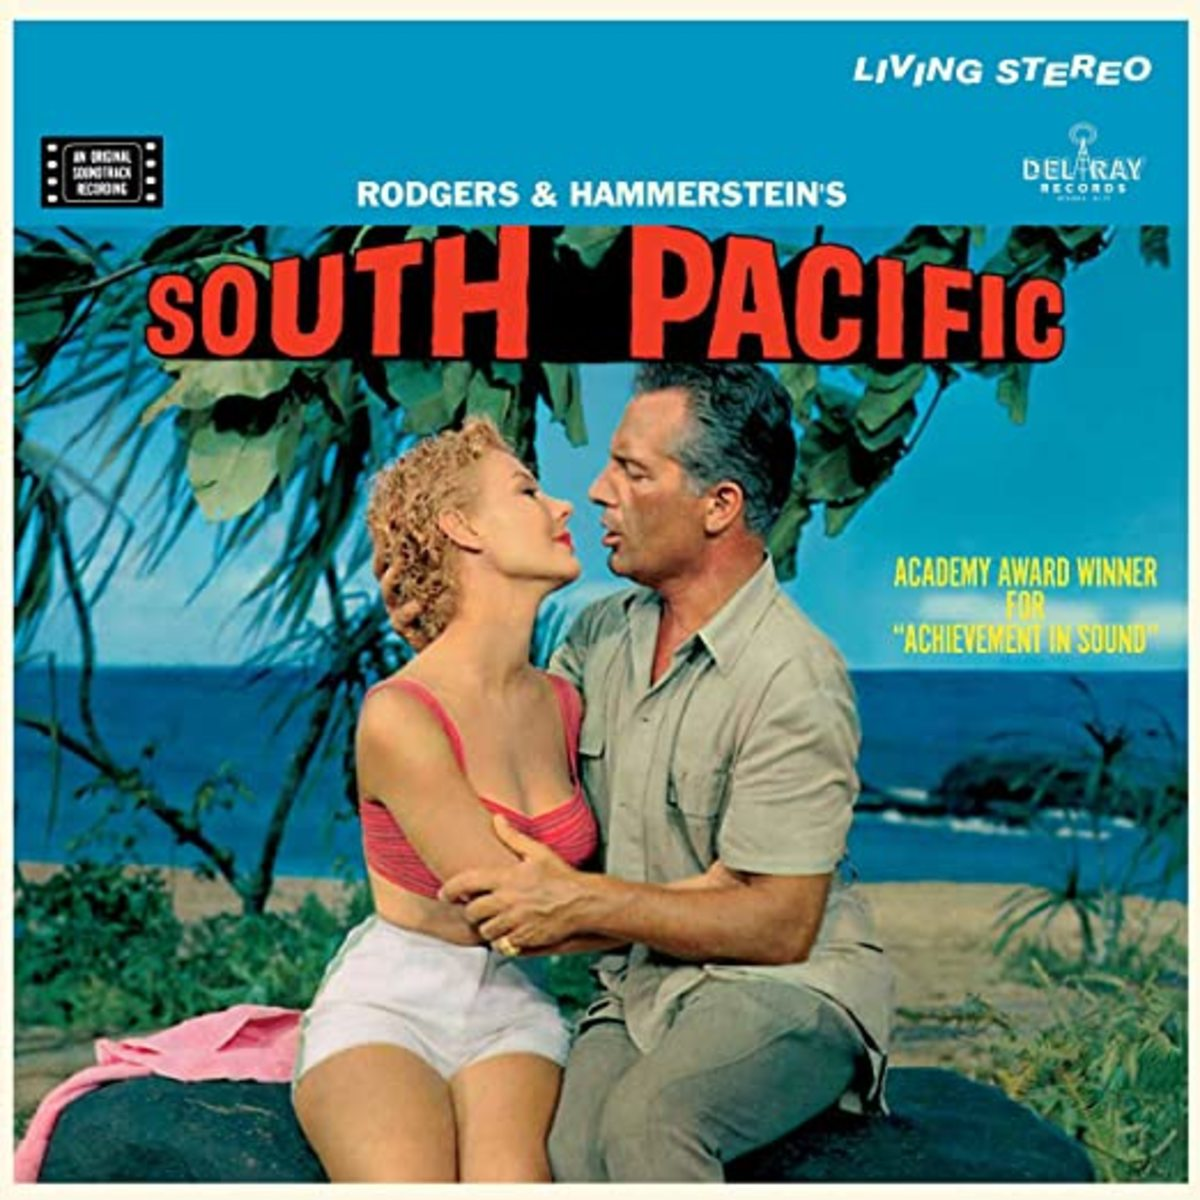 In 1958, South Pacific was the highest-grossing film.